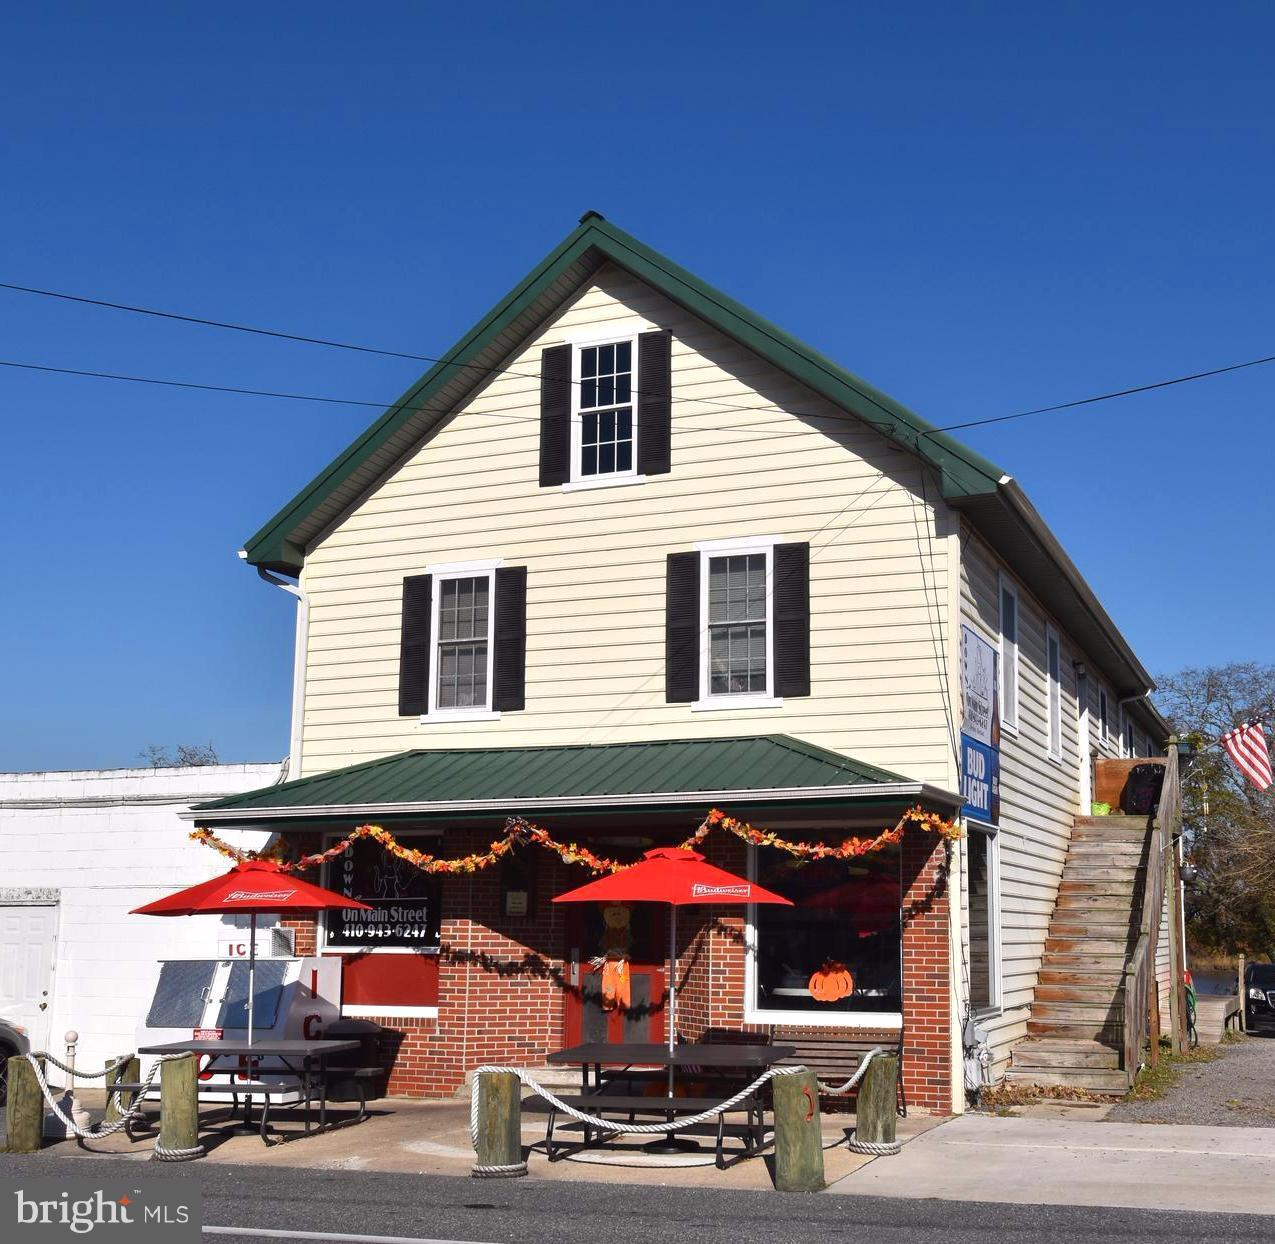 Commercial for Sale at 107 Main St Secretary, Maryland 21664 United States